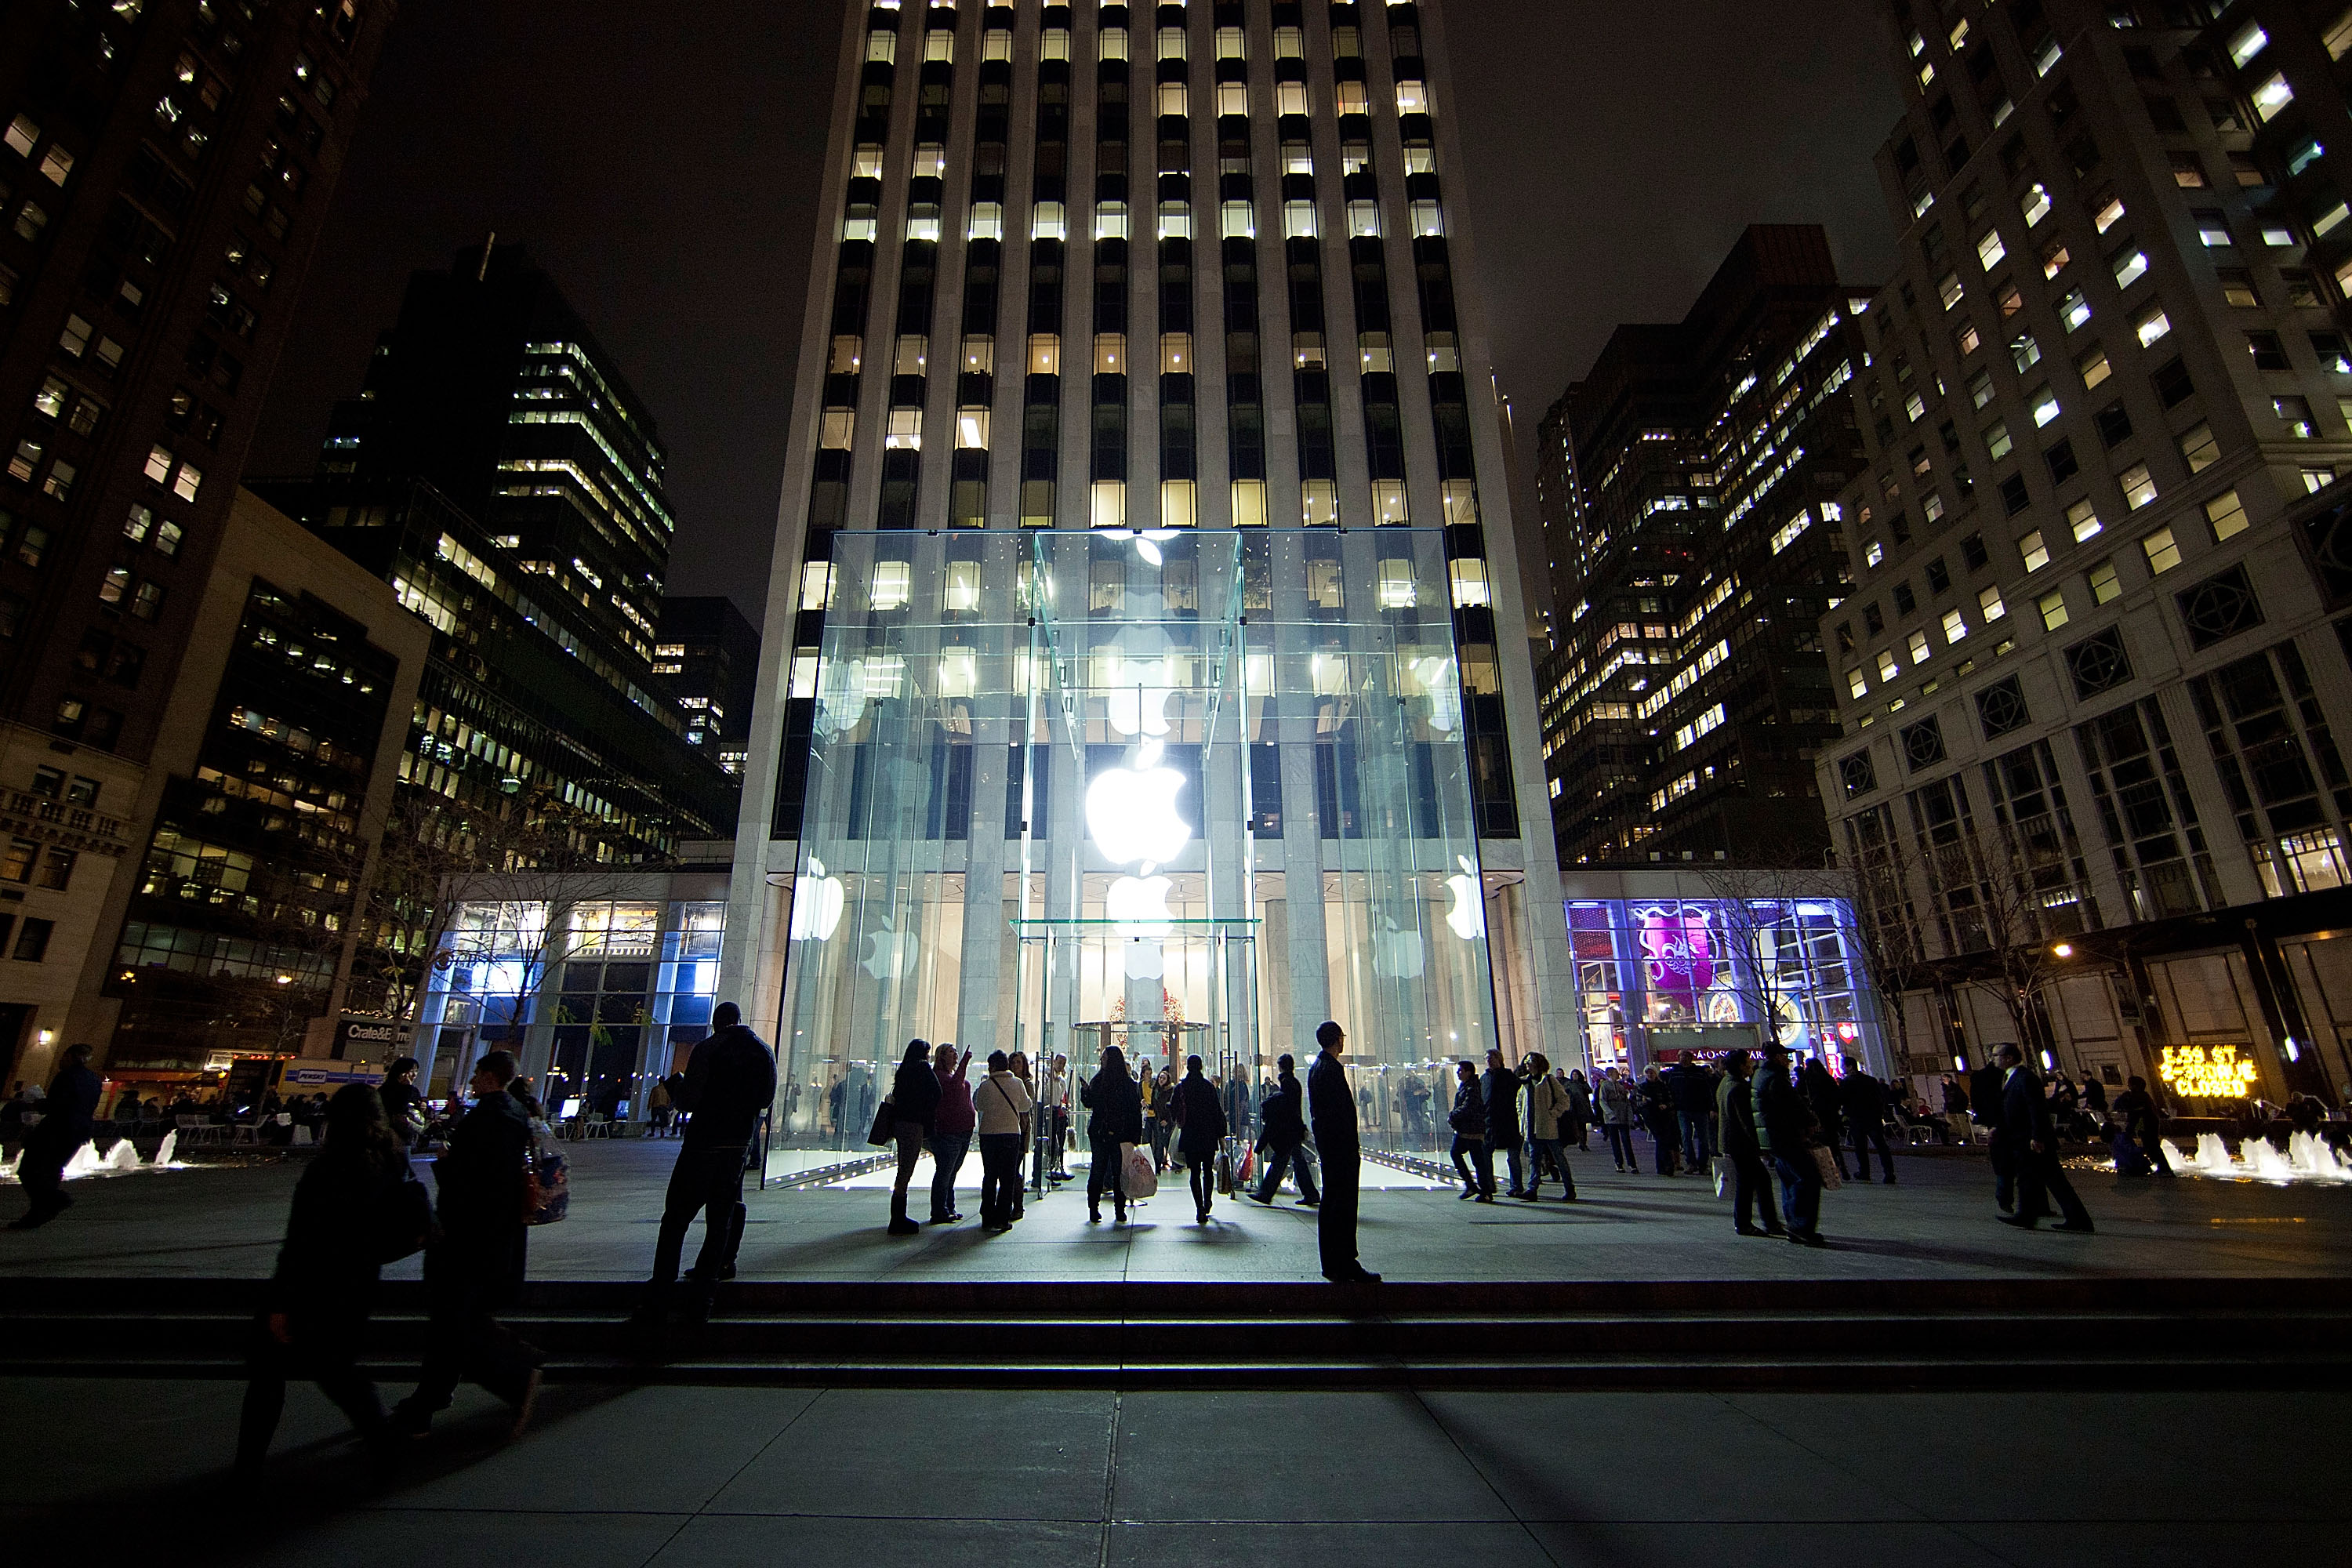 A general view of the exterior of the Fifth Avenue Apple Store in New York City.